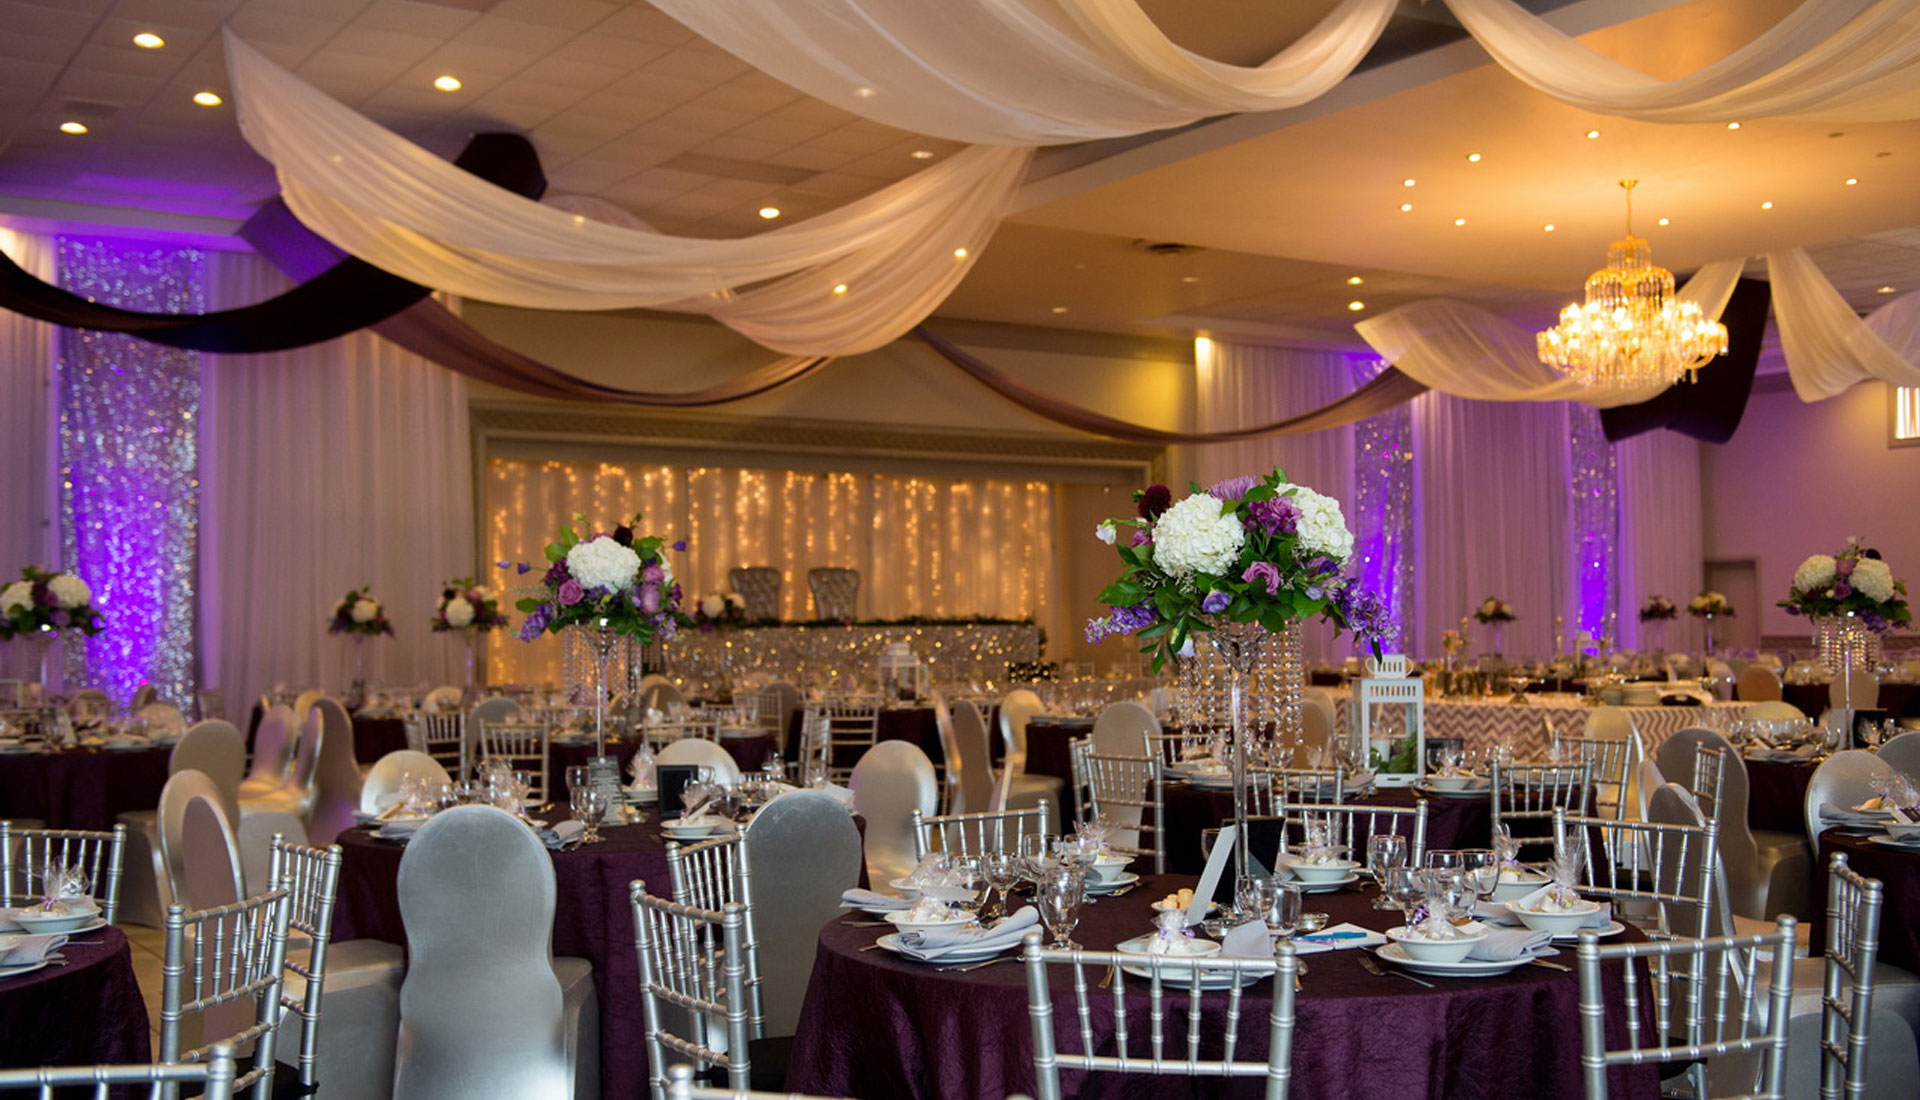 rent wedding decorations wedding wedding decorations and rentals 7065